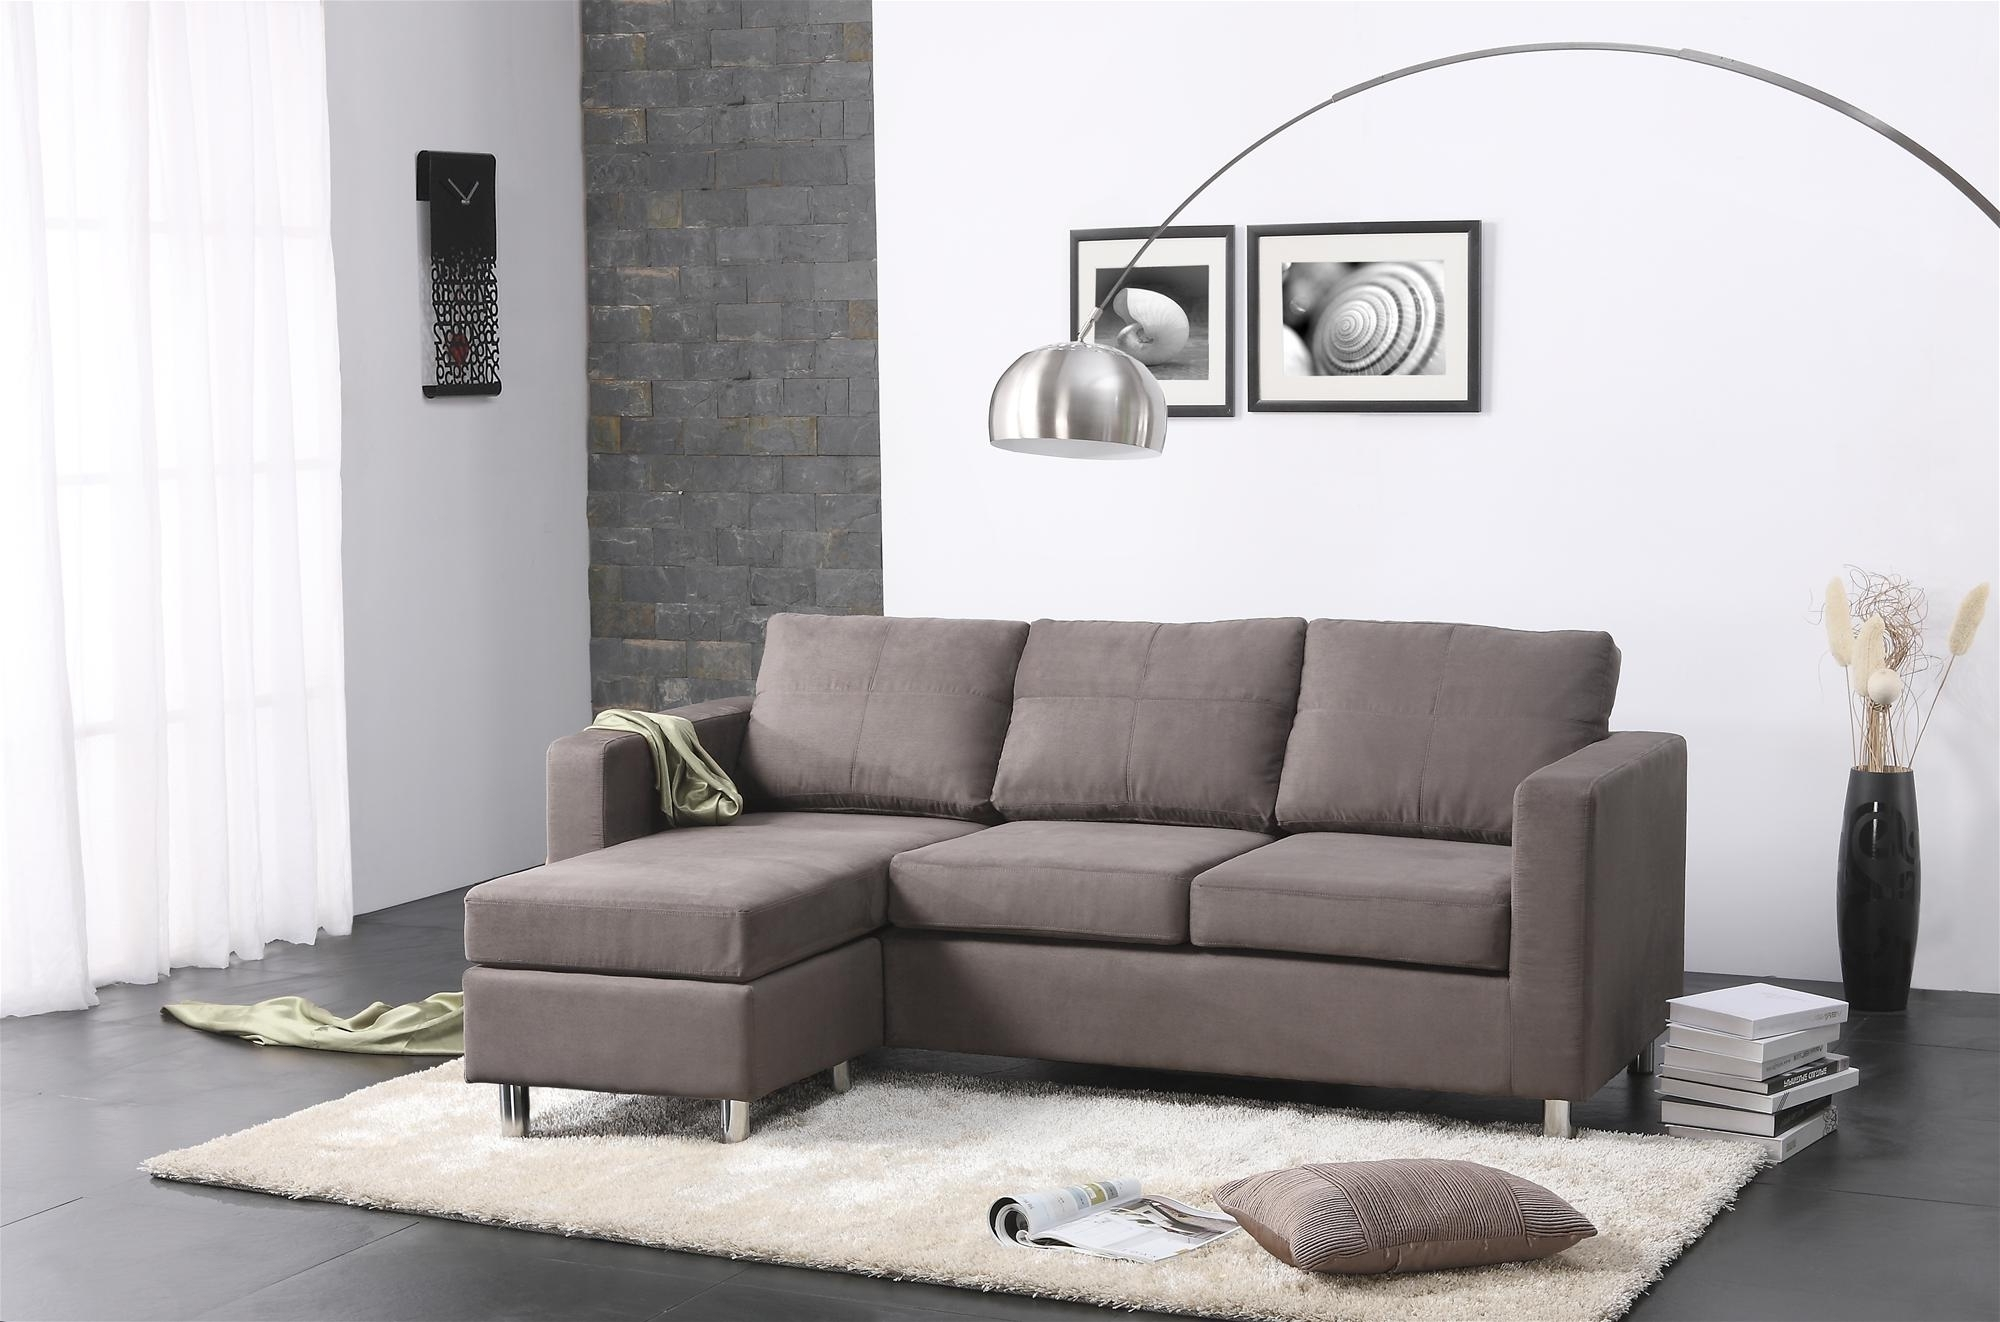 Sectional Sofas For Small Places For Favorite Sofa : Small Sofas For Small Spaces Tiny Sleeper Sofa Retro Sofa (Gallery 6 of 20)